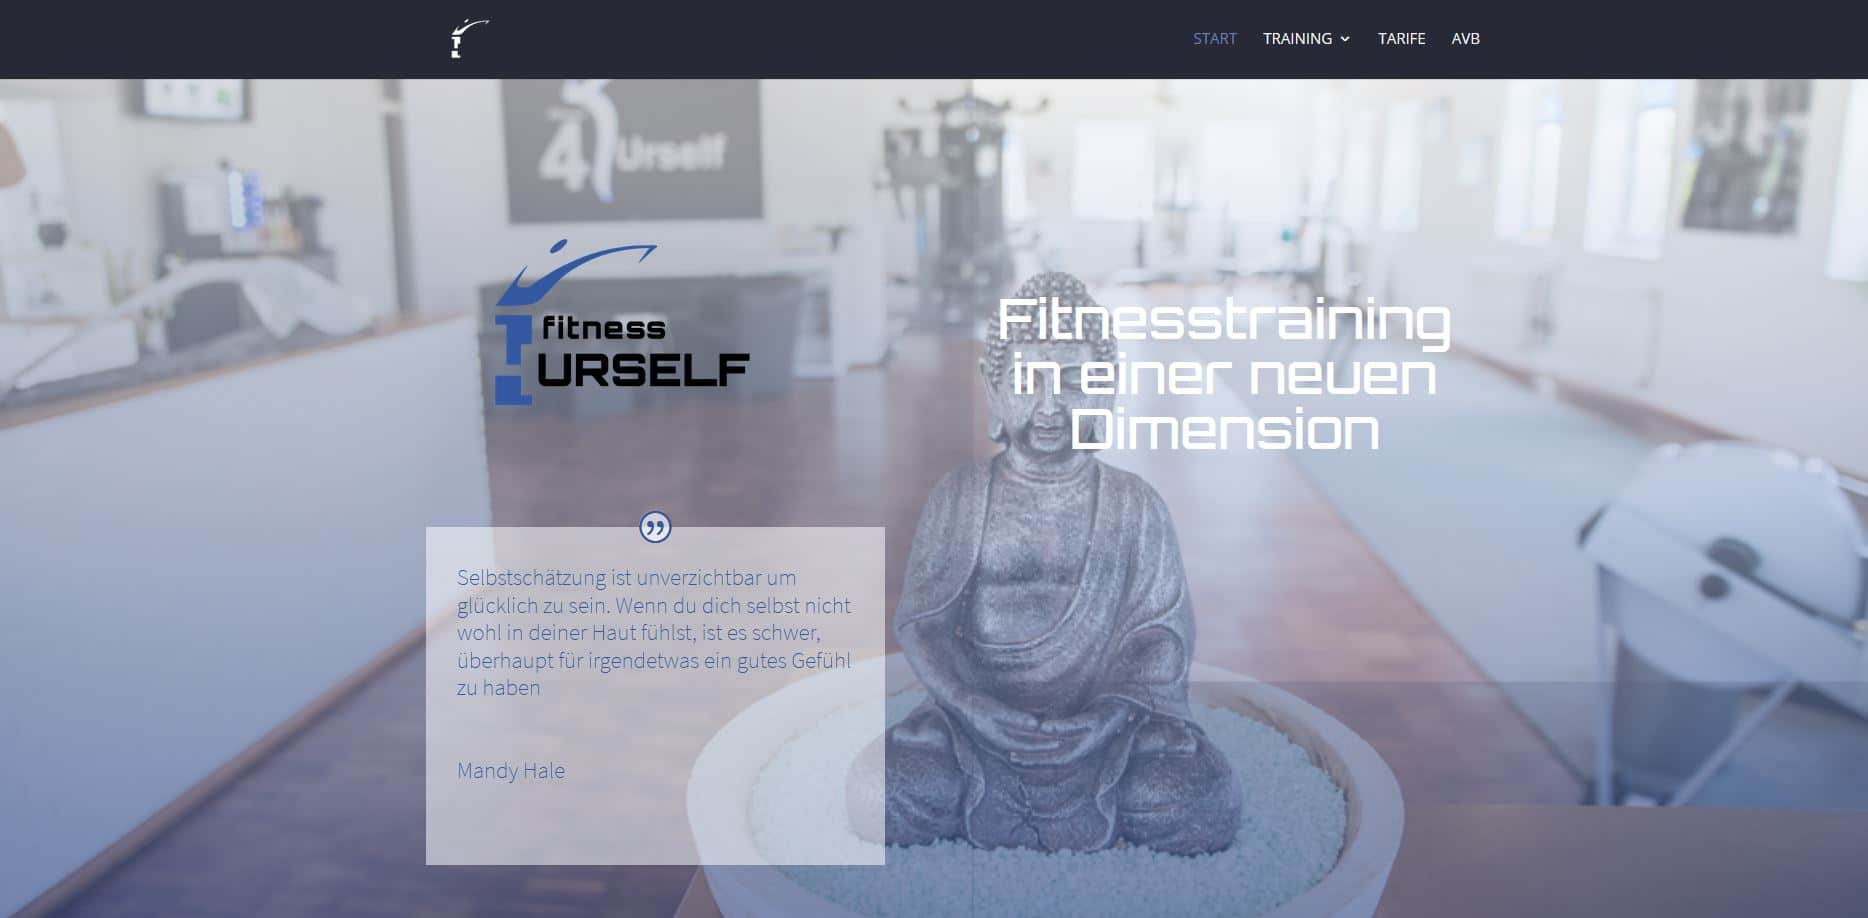 4Urself.fit Webdesign WordPress Divi Theme